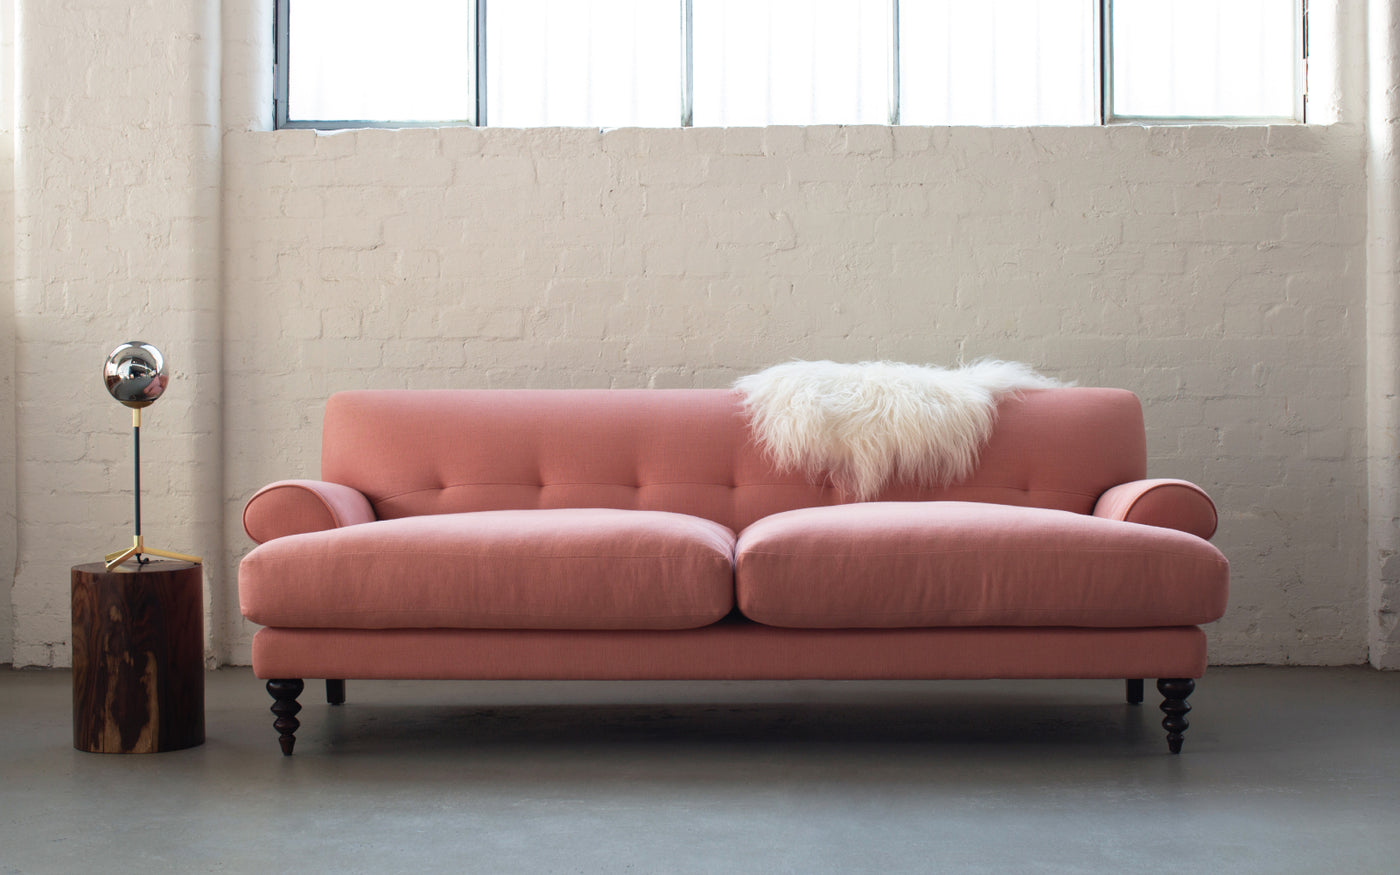 20 off sofas until may 29